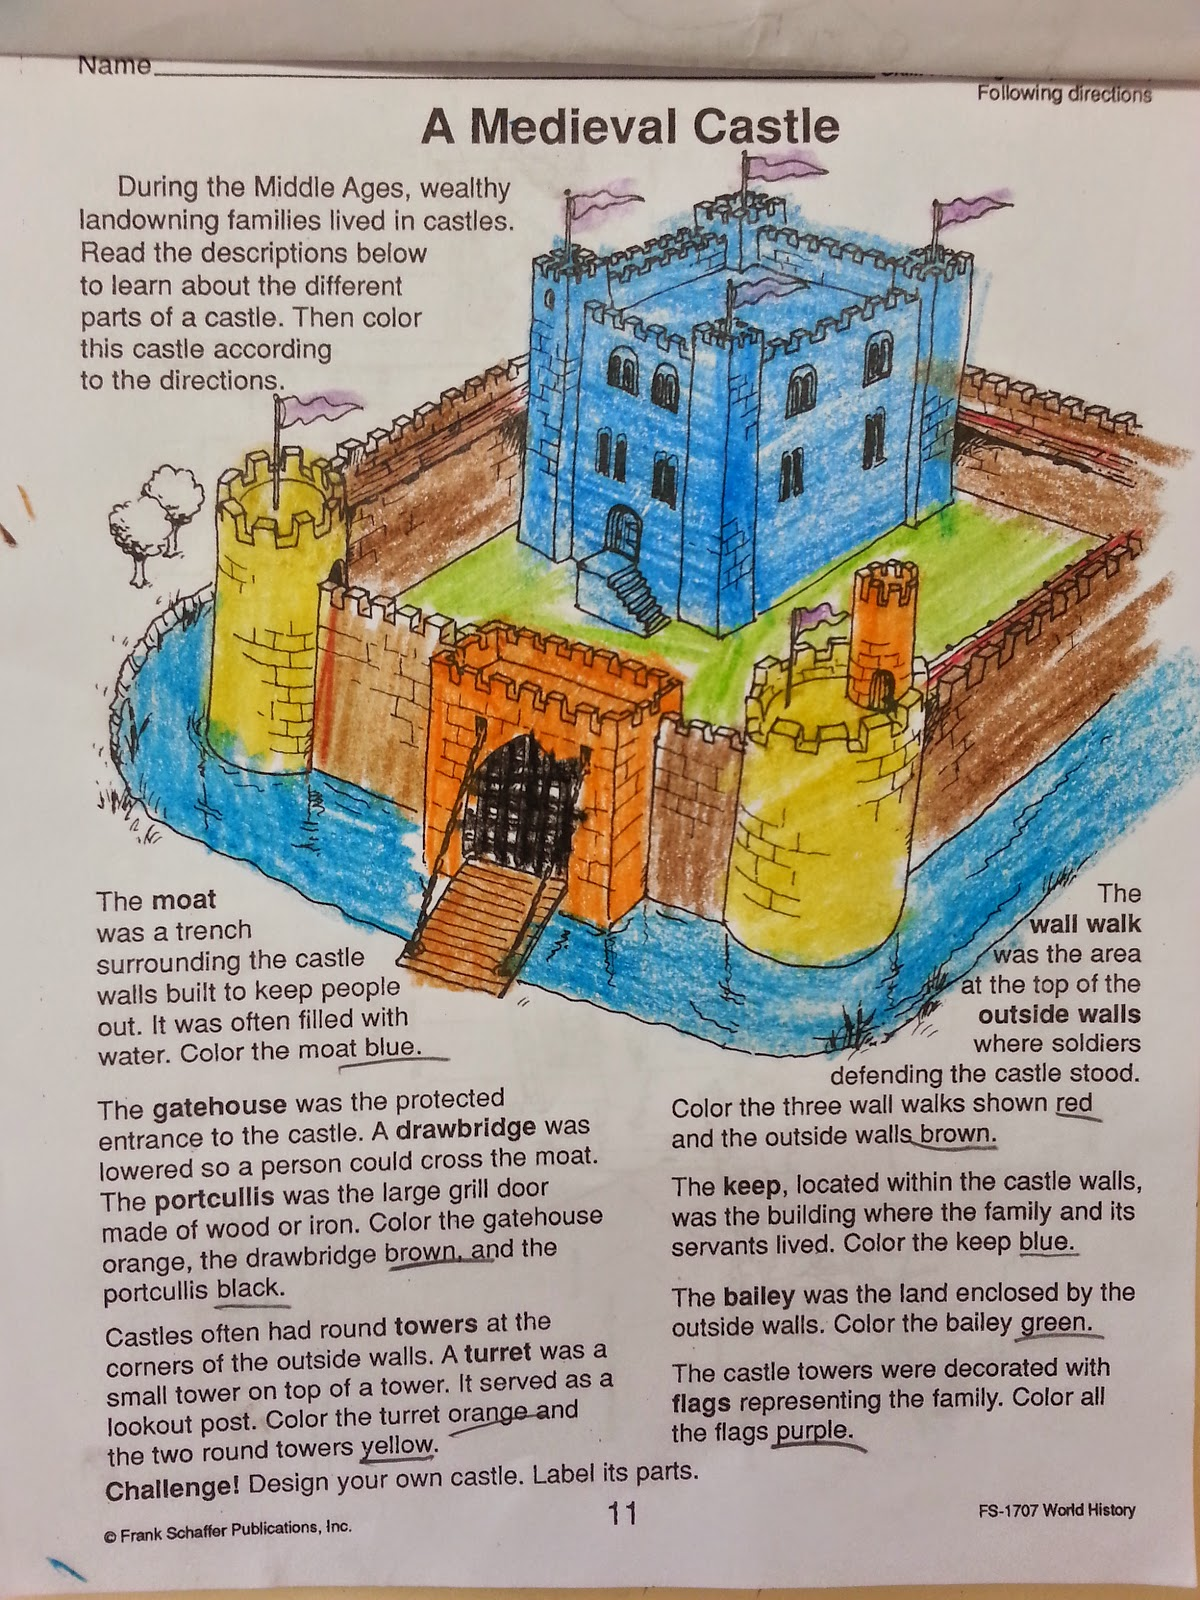 an essay on the castles in the middle ages View essay - middle ages essay from ghist 102 at james madison university middle ages 1000-1500 medieval, castles, cathedrals.